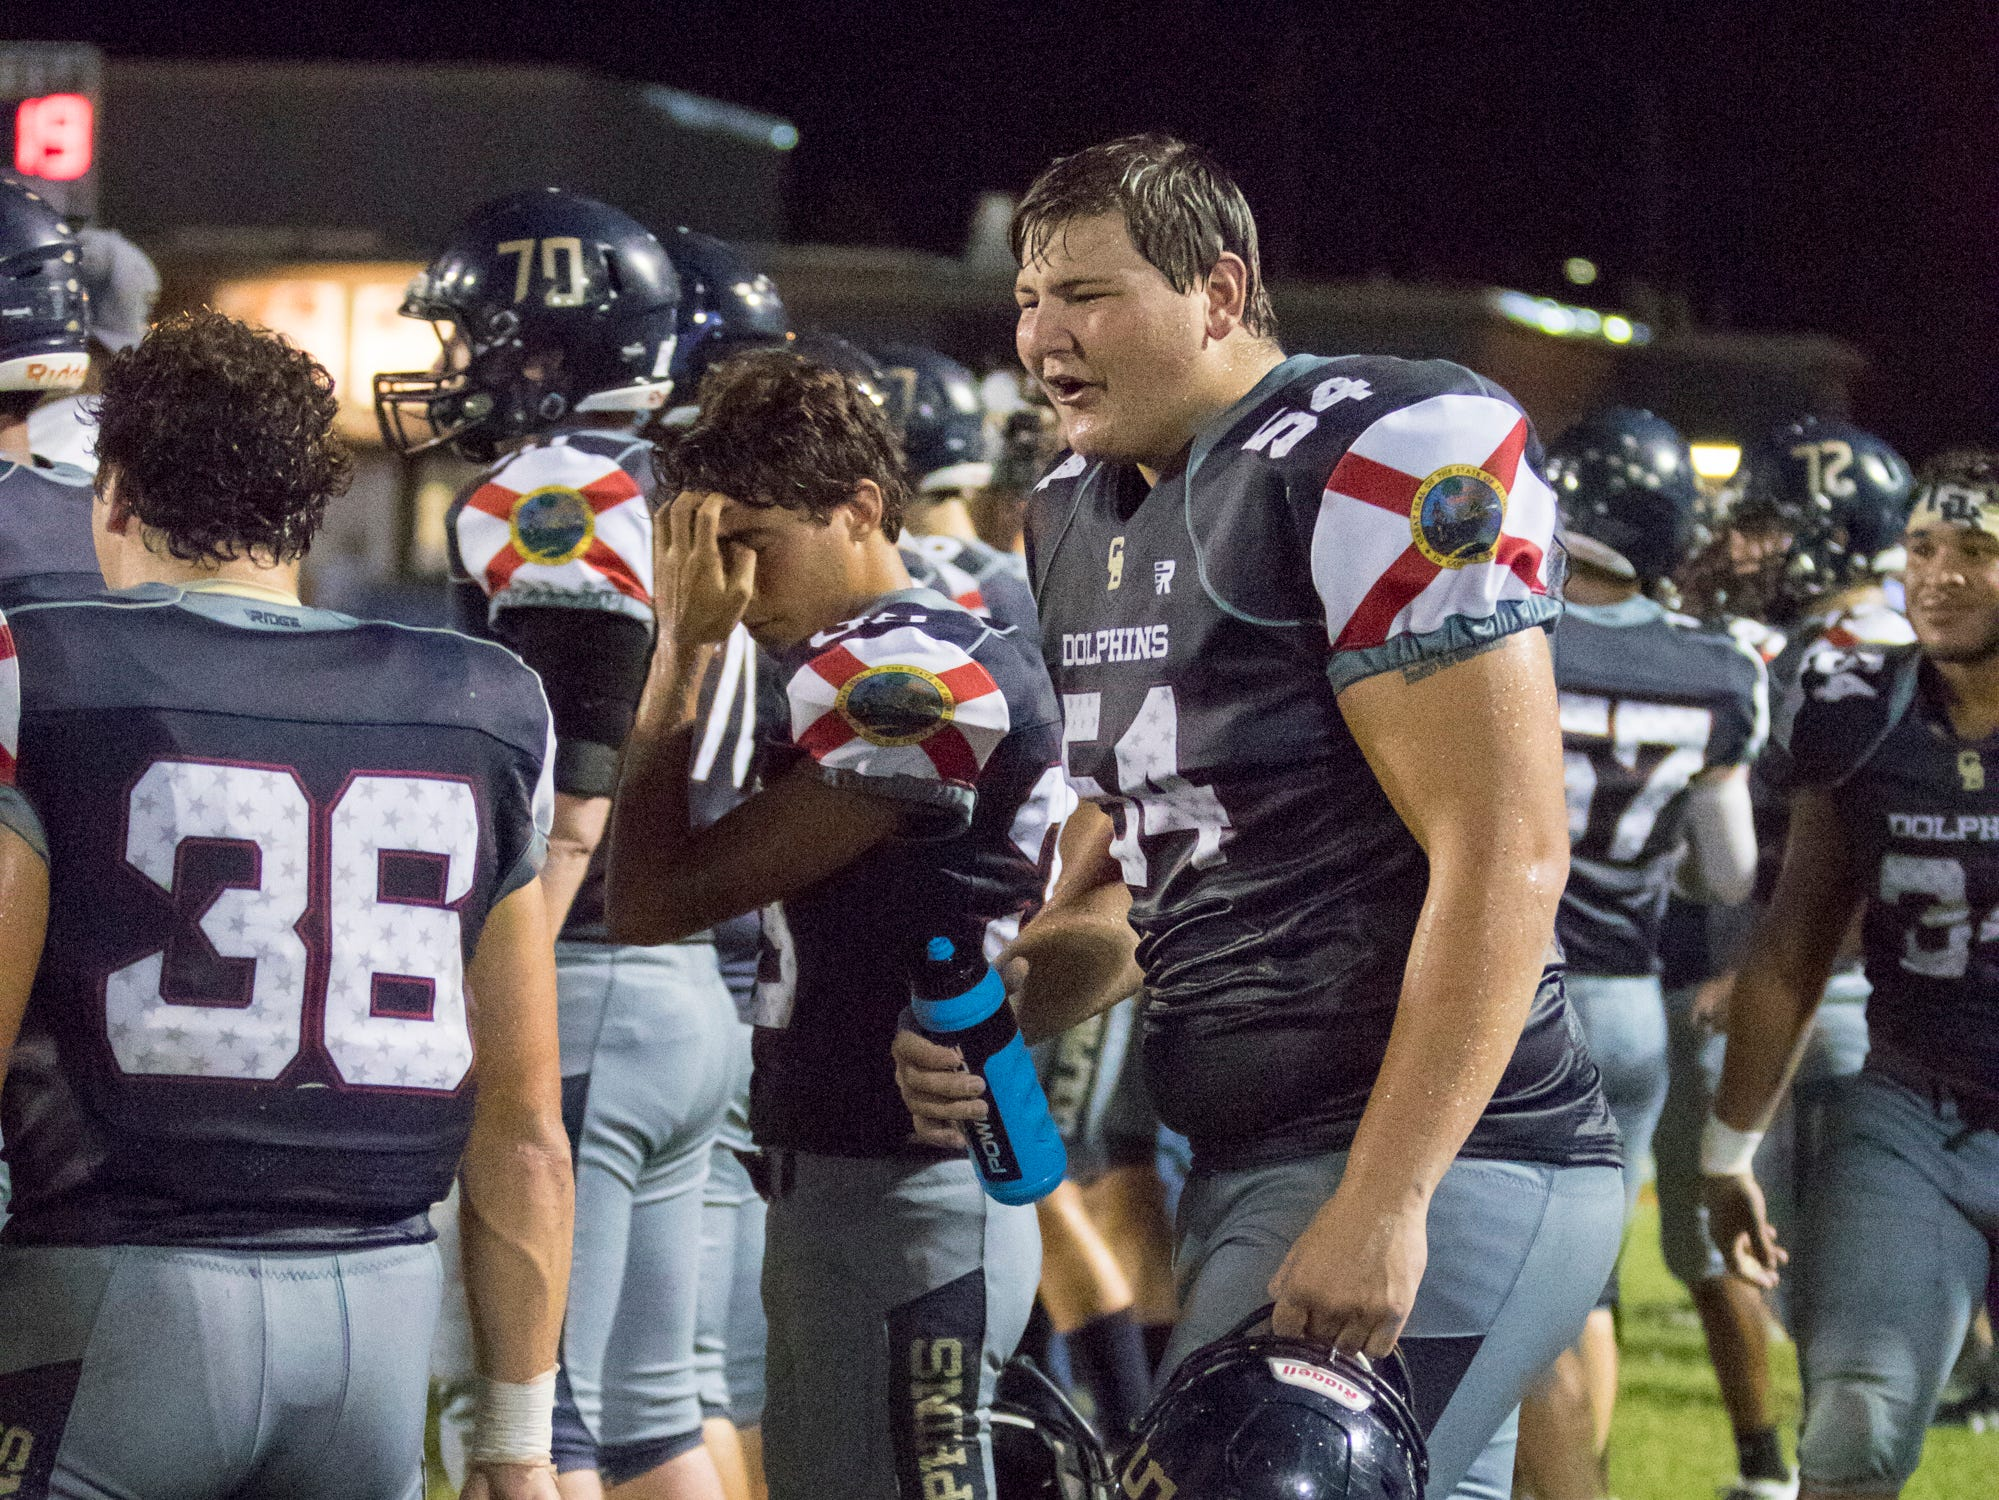 Joseph Stone (54) talks with teammates on the sideline during the Tate vs Gulf Breeze football game at Gulf Breeze High School in Pace on Friday, August 31, 2018.